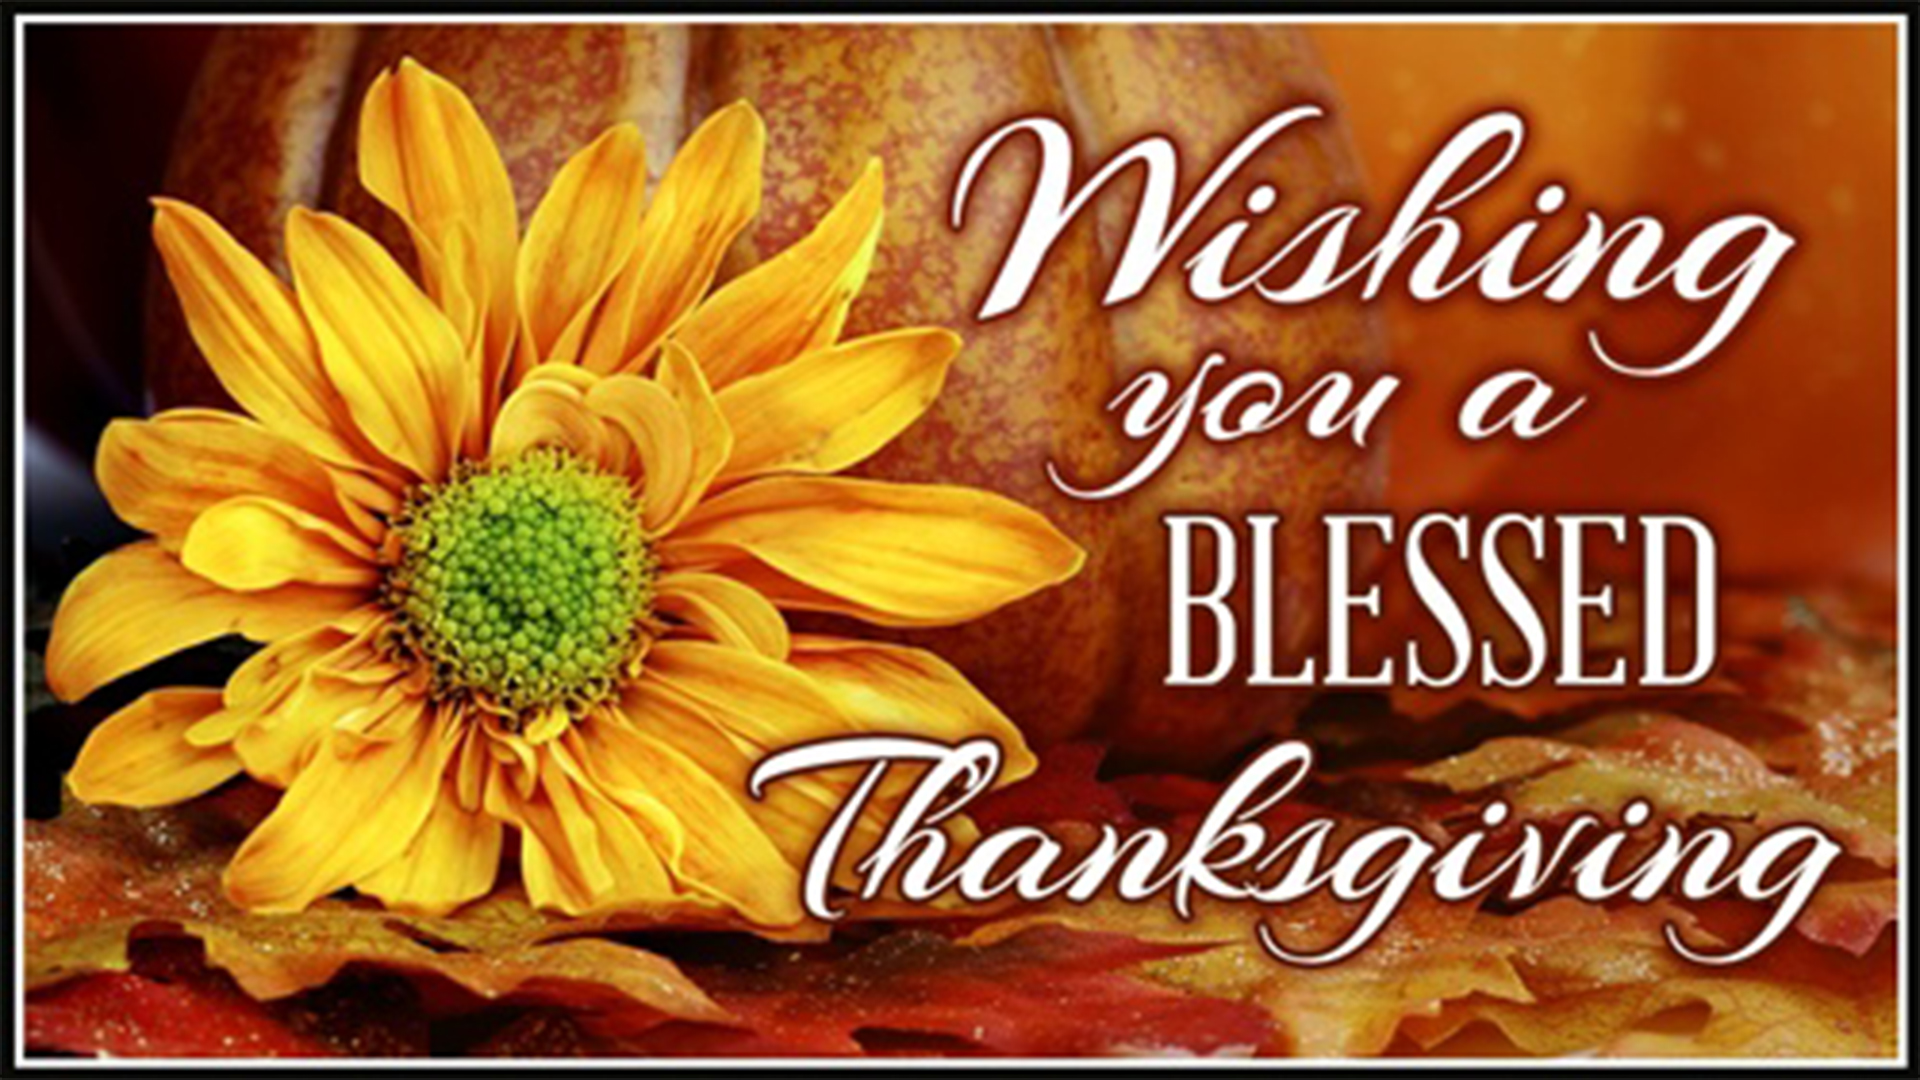 Happy thanksgiving pictures hd images 2017 thanksgiving greetings m4hsunfo